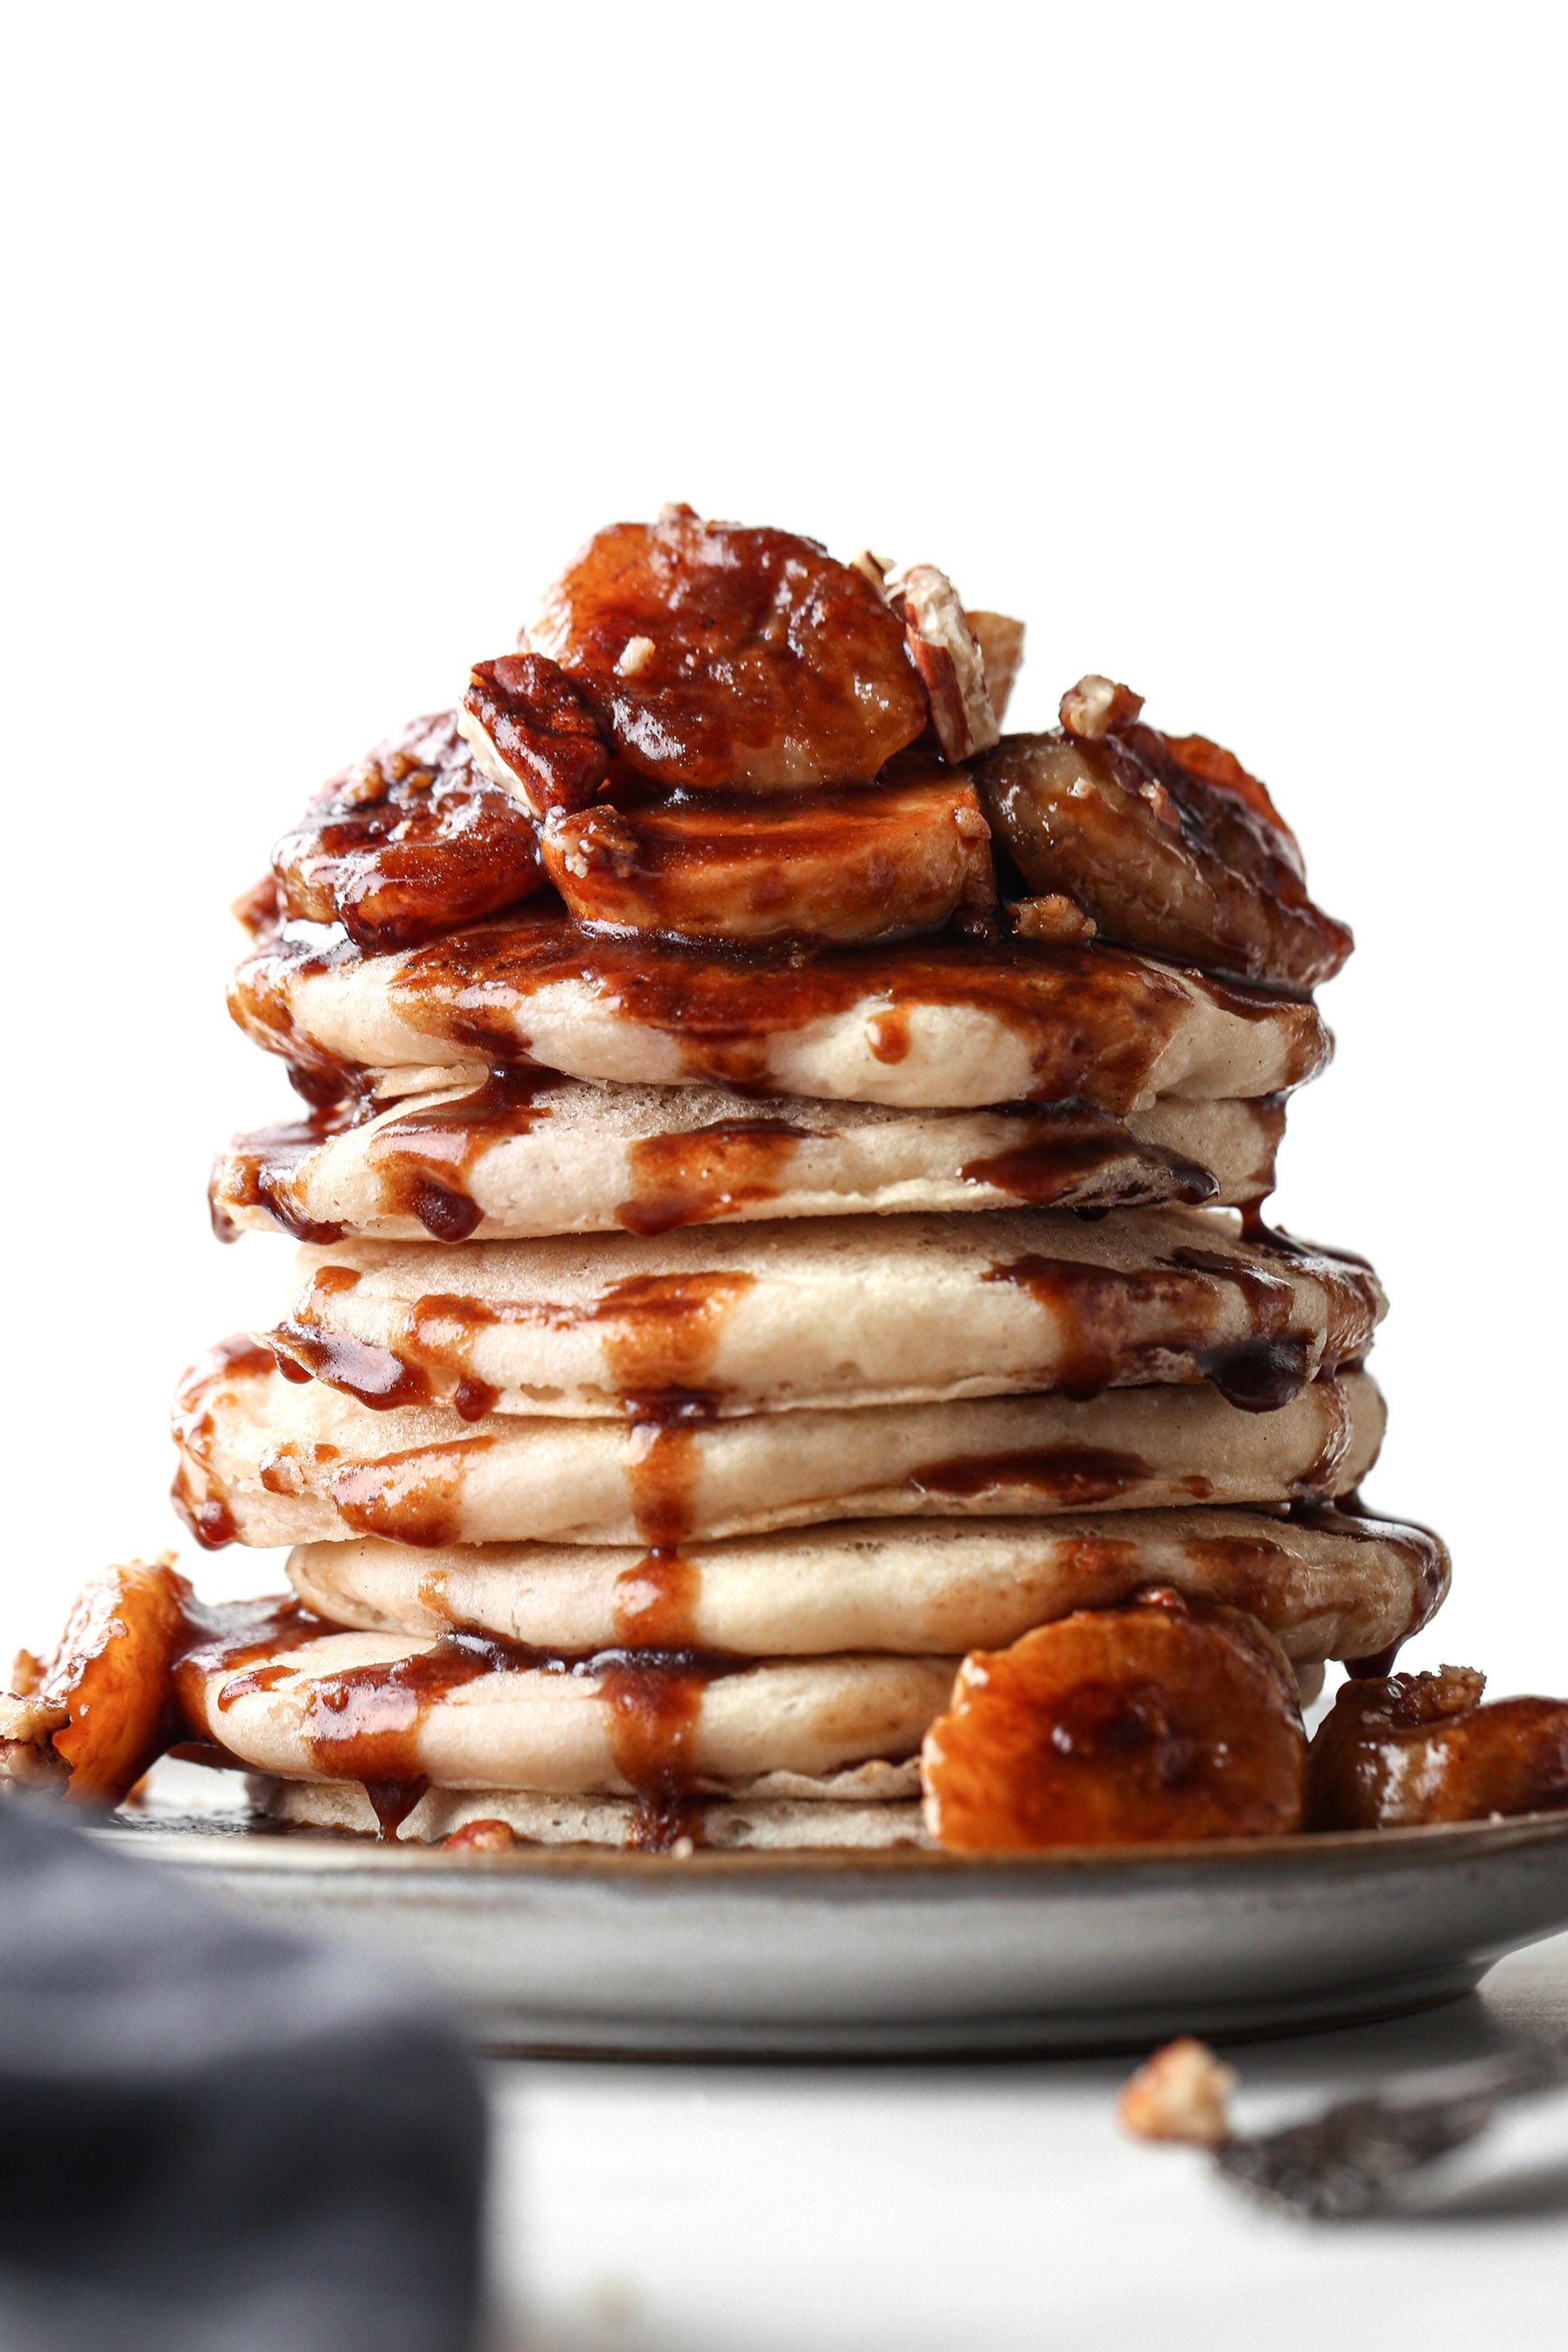 Bananas Foster Pancakes | Vegan friendly and refined sugar free with gluten free option.